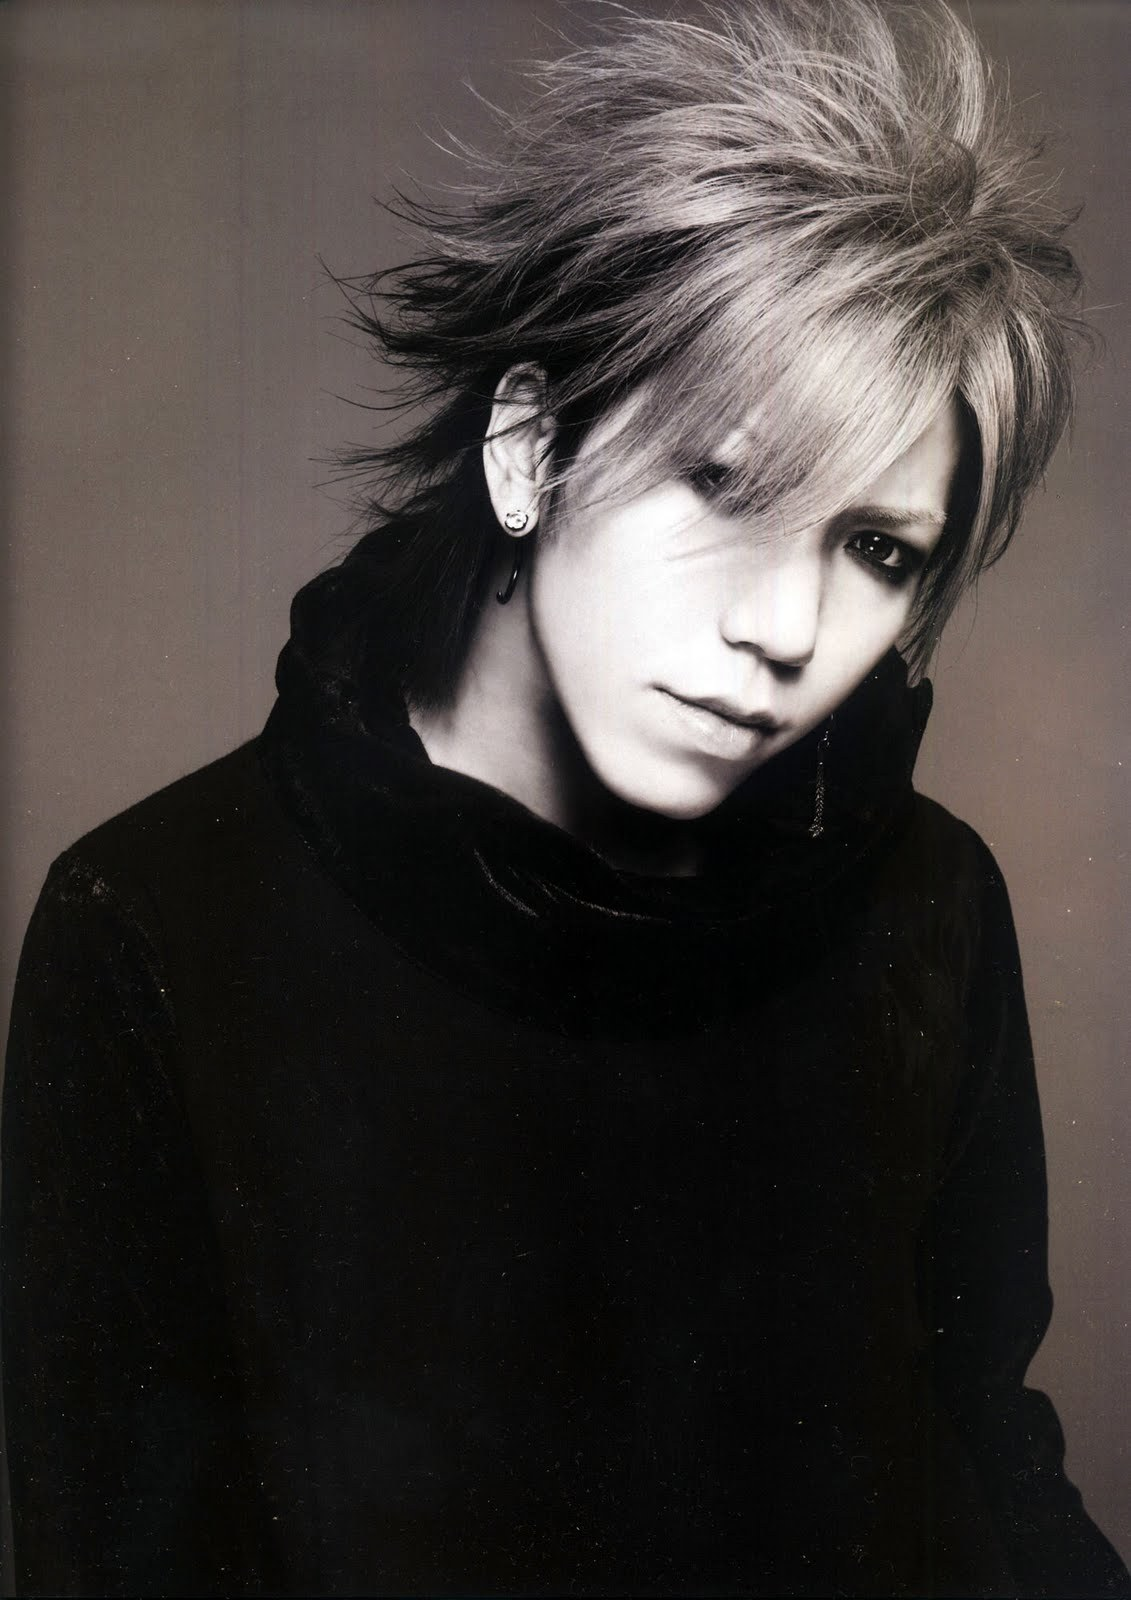 http://images5.fanpop.com/image/photos/26100000/Aoi-guitar-the-gazette-26159037-1131-1600.jpg